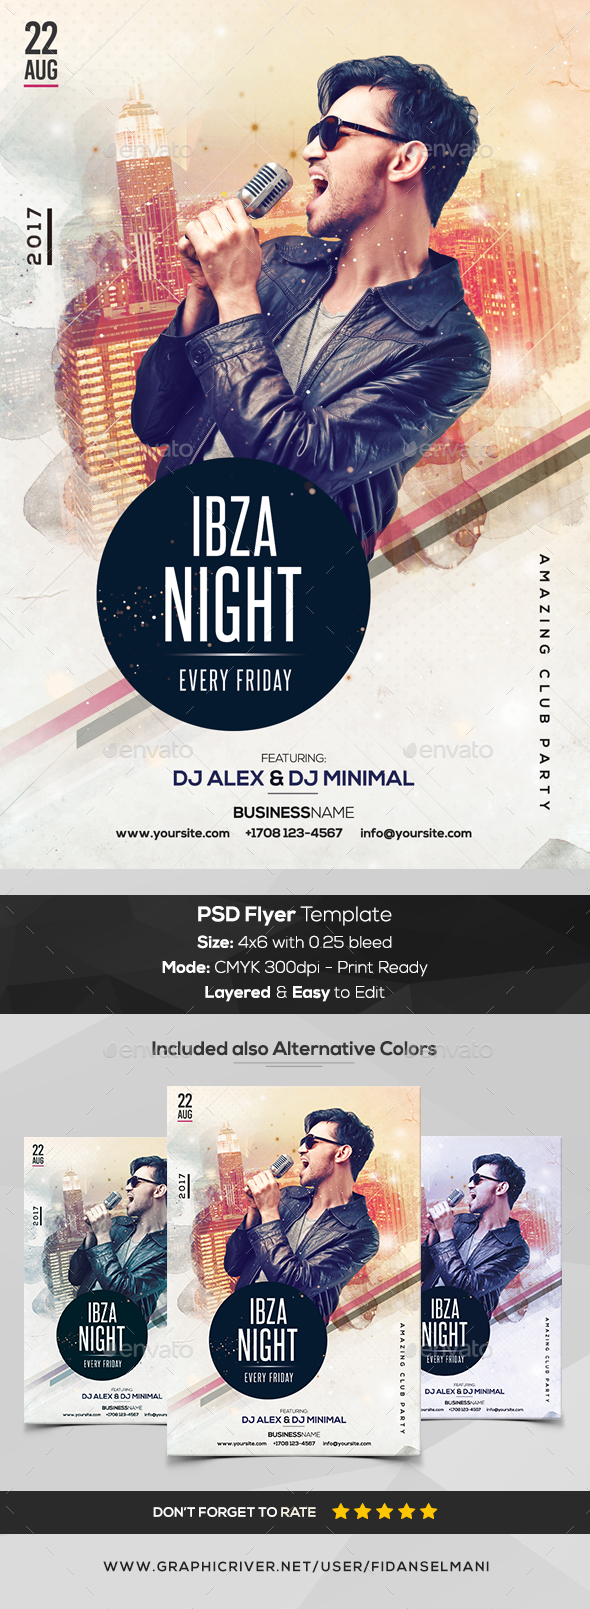 Ibza Night - PSD Flyer Template - Events Flyers